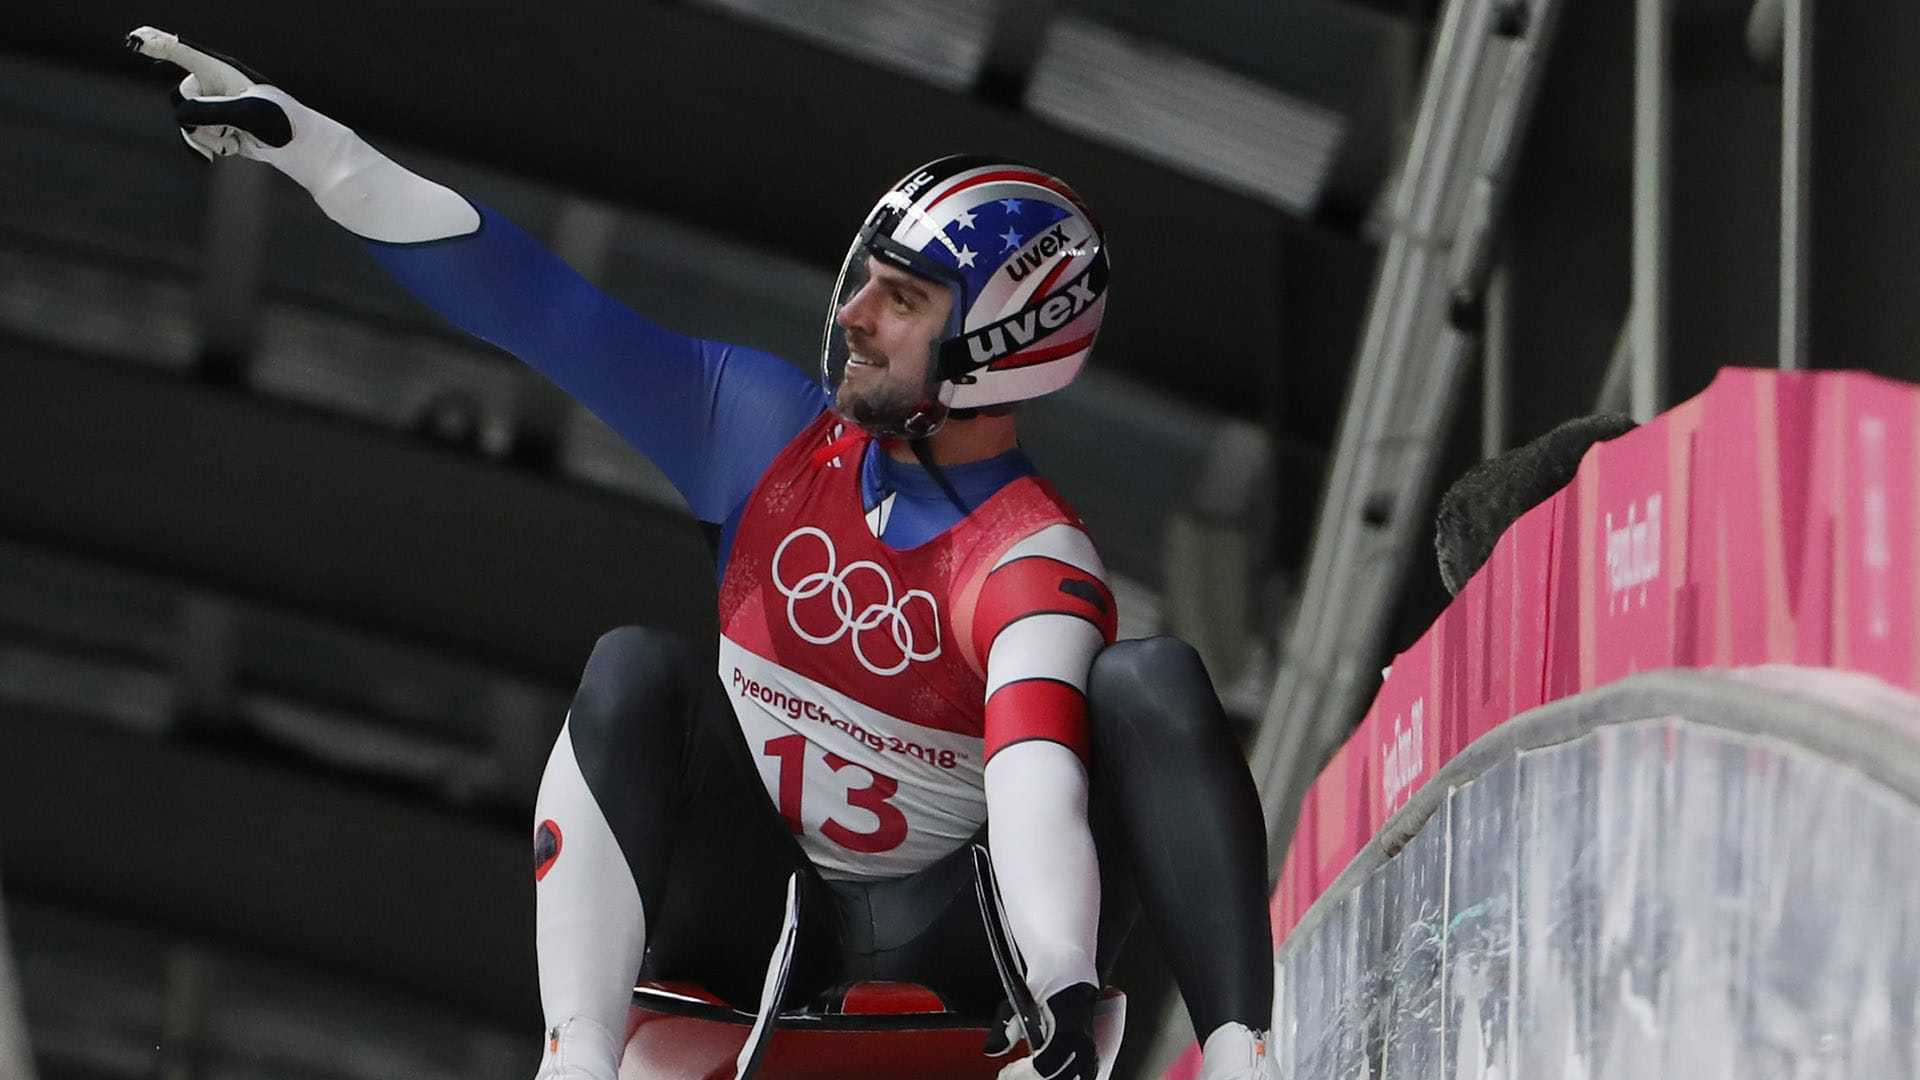 Chris Mazdzer reacts after the third run of the men's single luge in the Pyeongchang 2018 Olympic Winter Games.